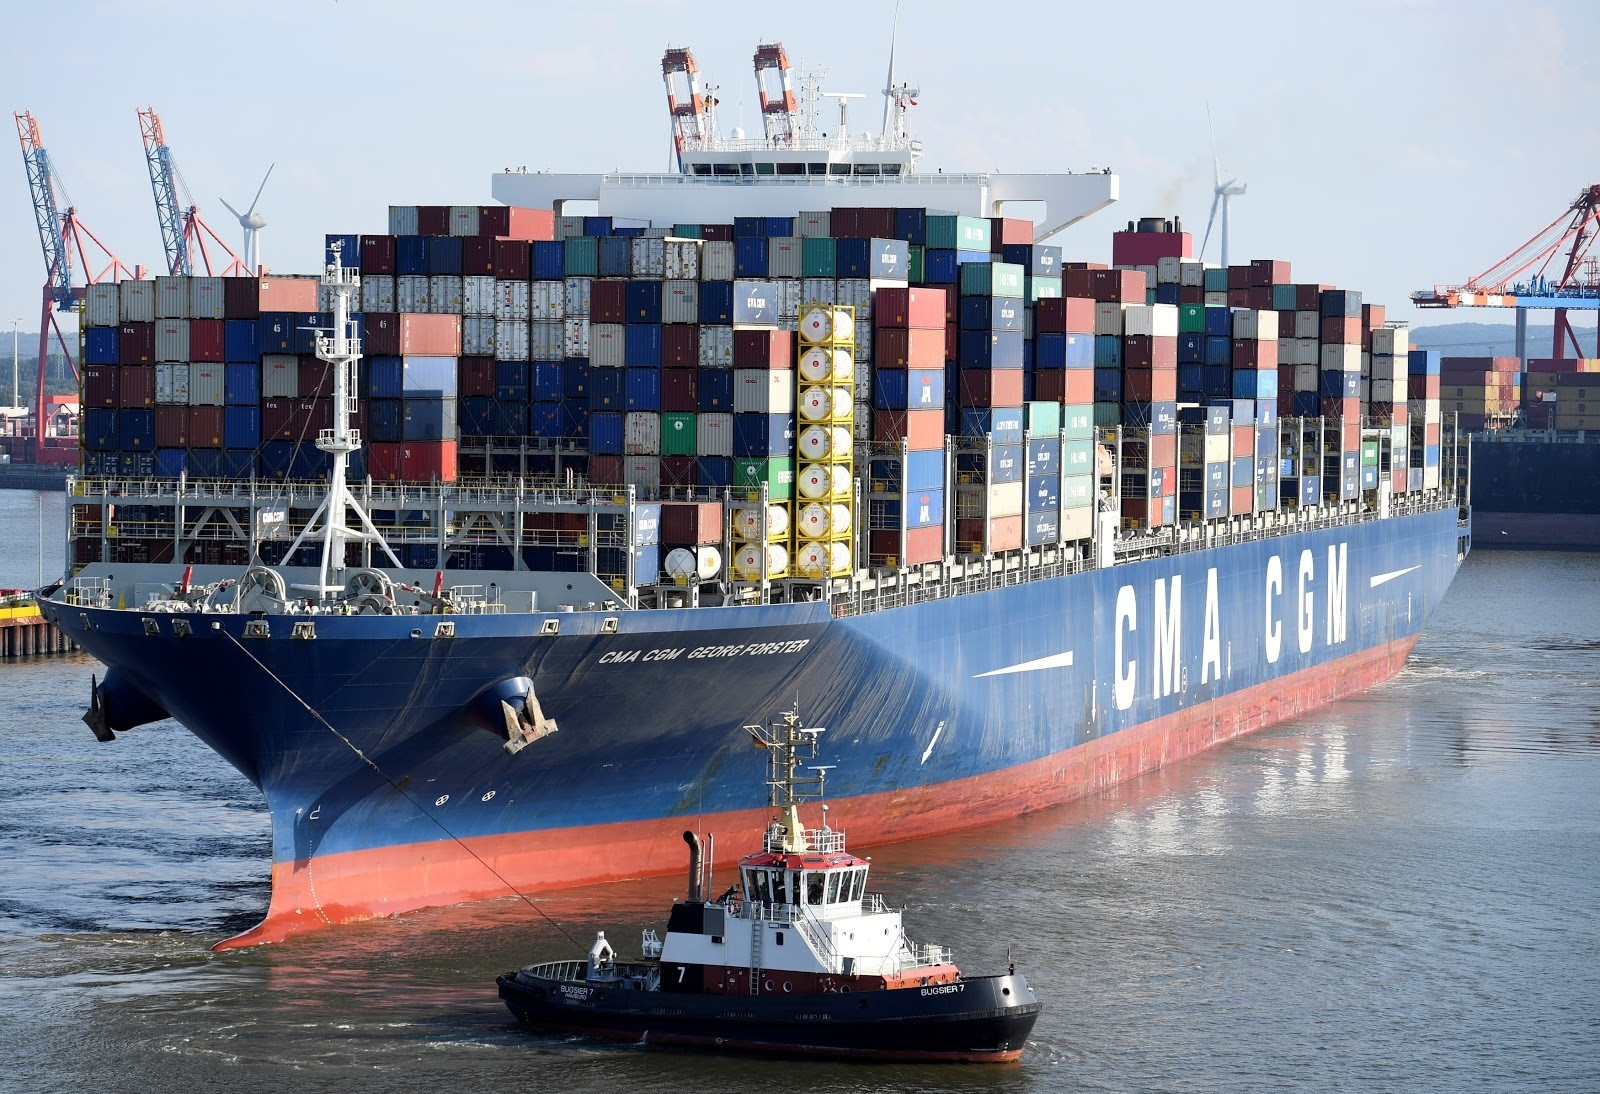 Vast container ships are a vital part of the global supply chain.